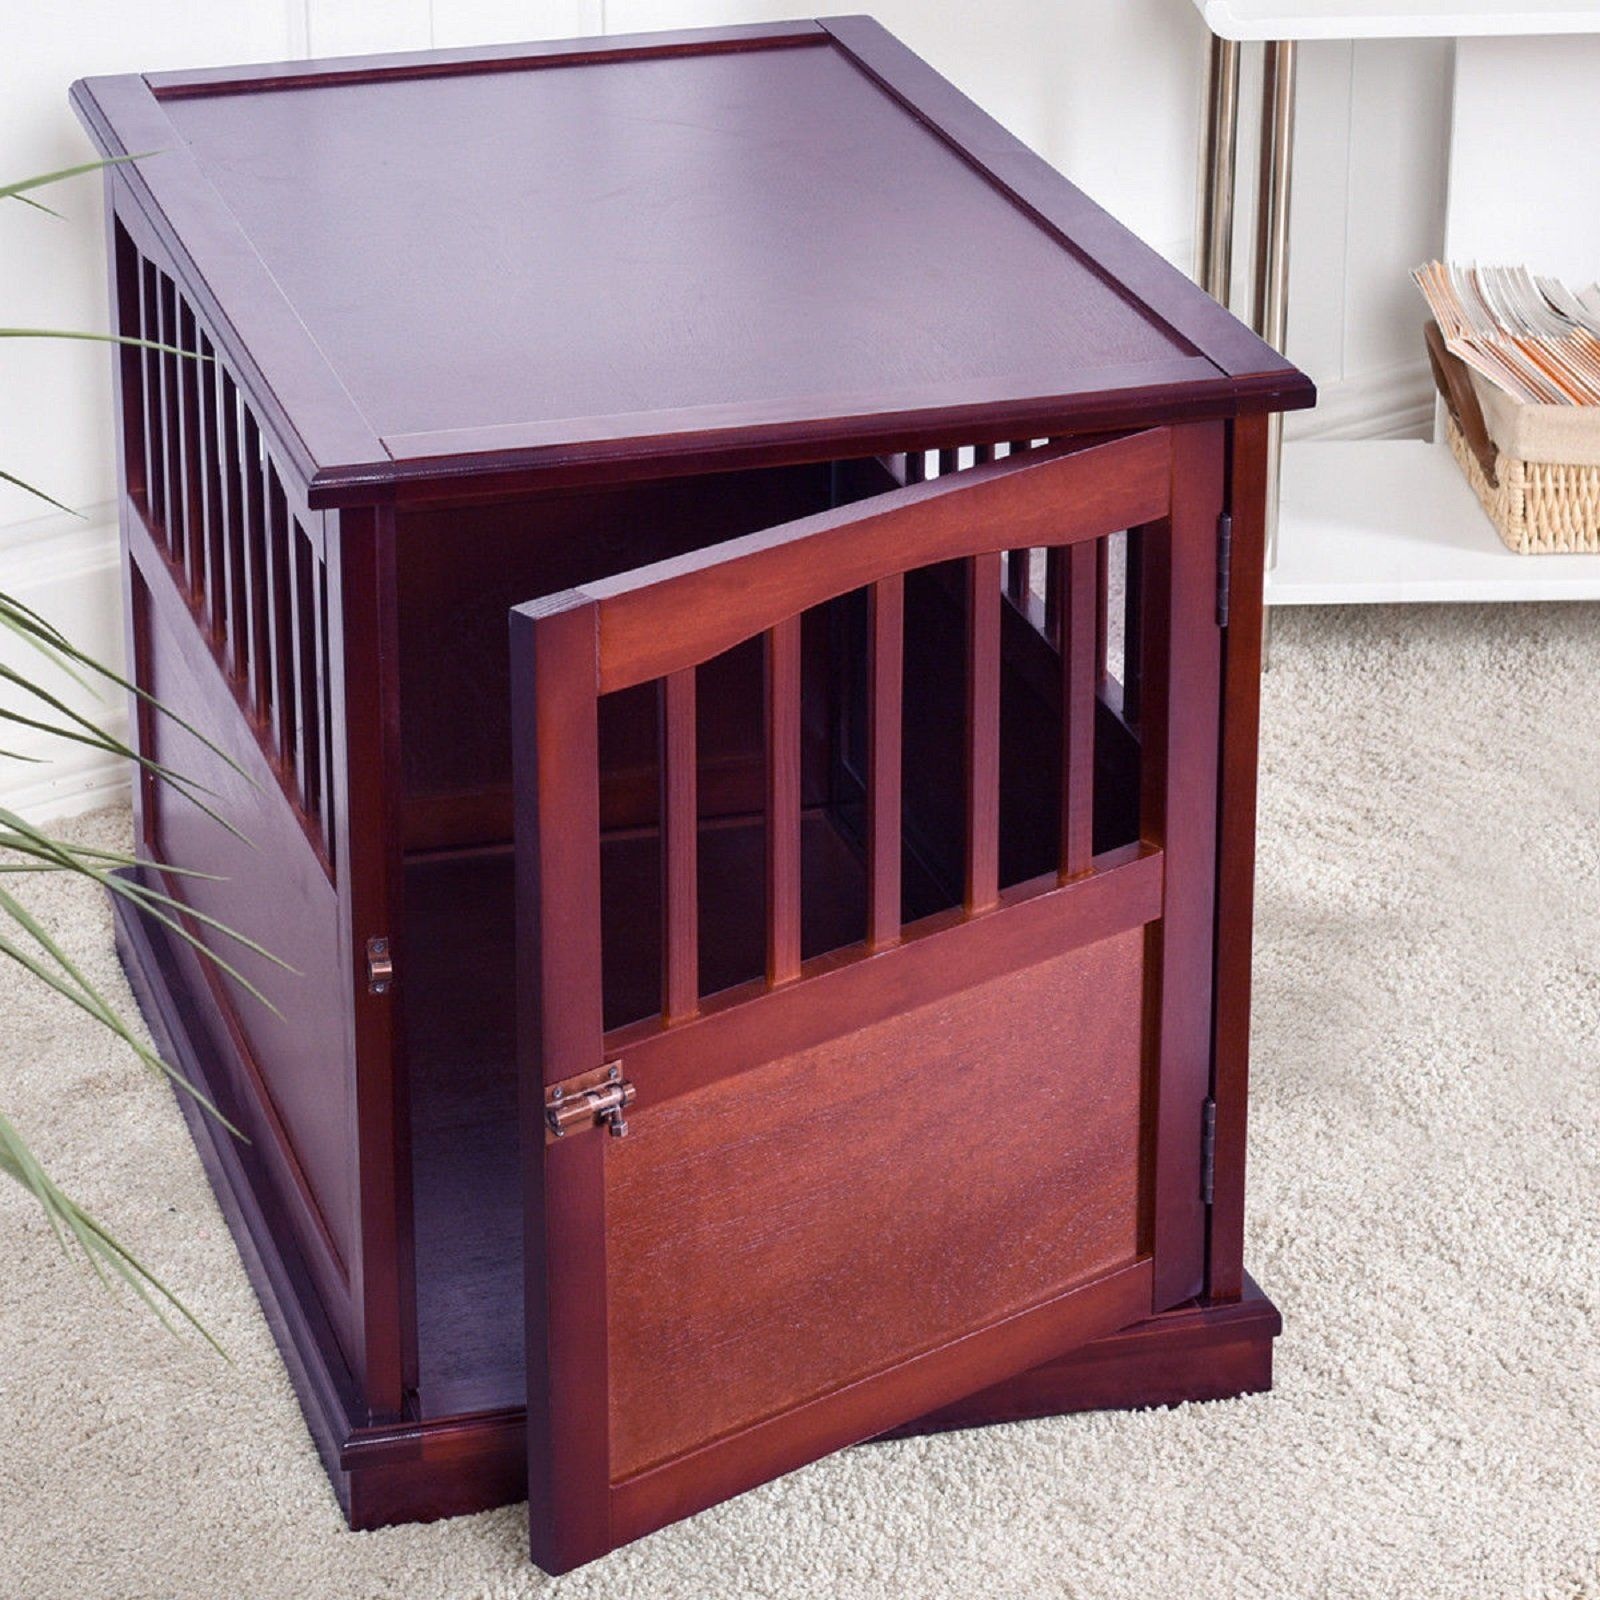 small dog crate hot wood pet end table cat kennel cage lockable door furniture outdoor wicker accent thomasville french provincial dining room black marble top tables brown sofa